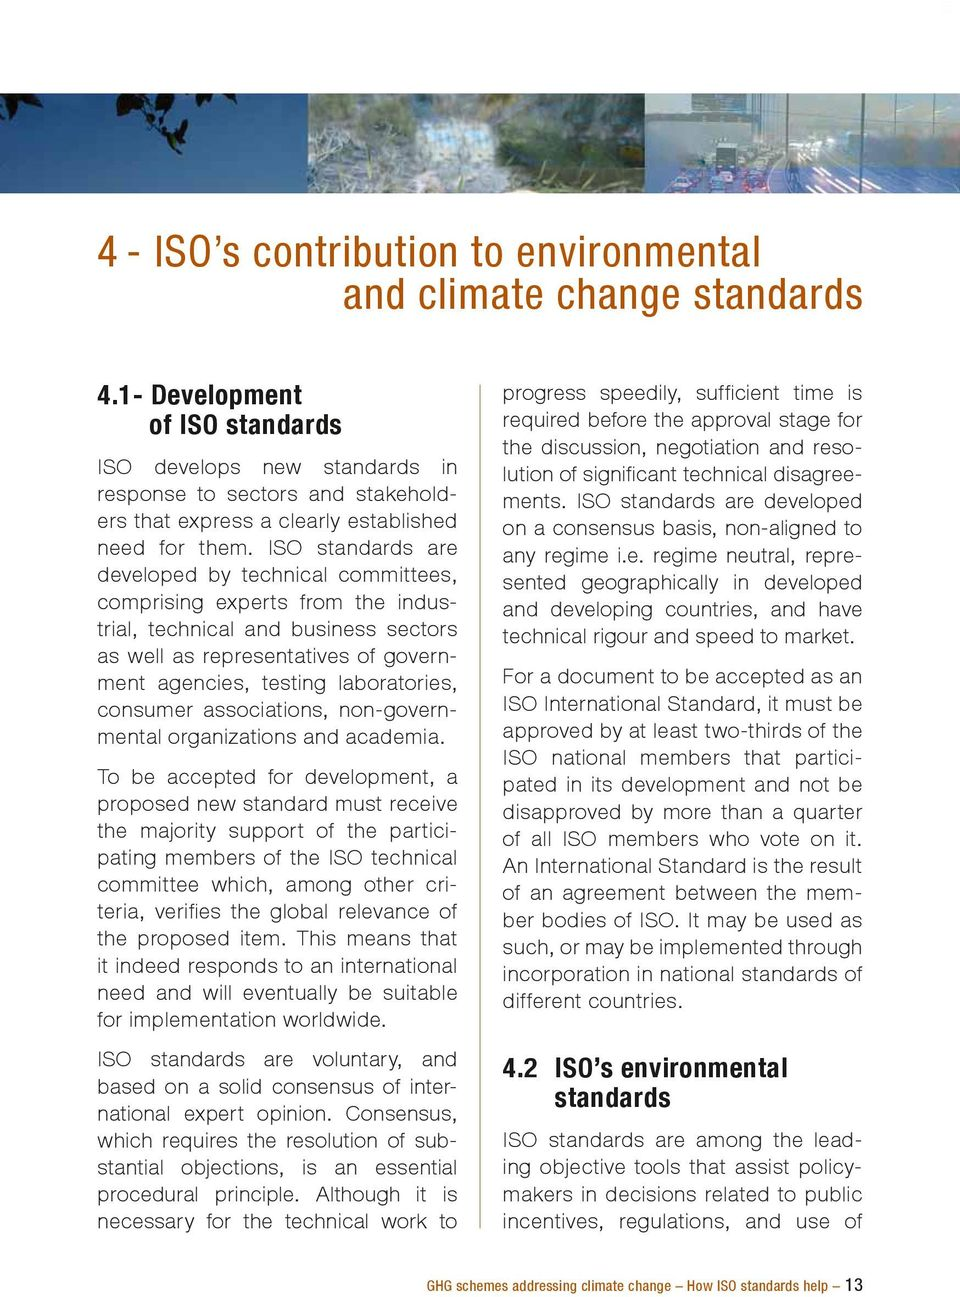 ISO standards are developed by technical committees, comprising experts from the industrial, technical and business sectors as well as representatives of government agencies, testing laboratories,